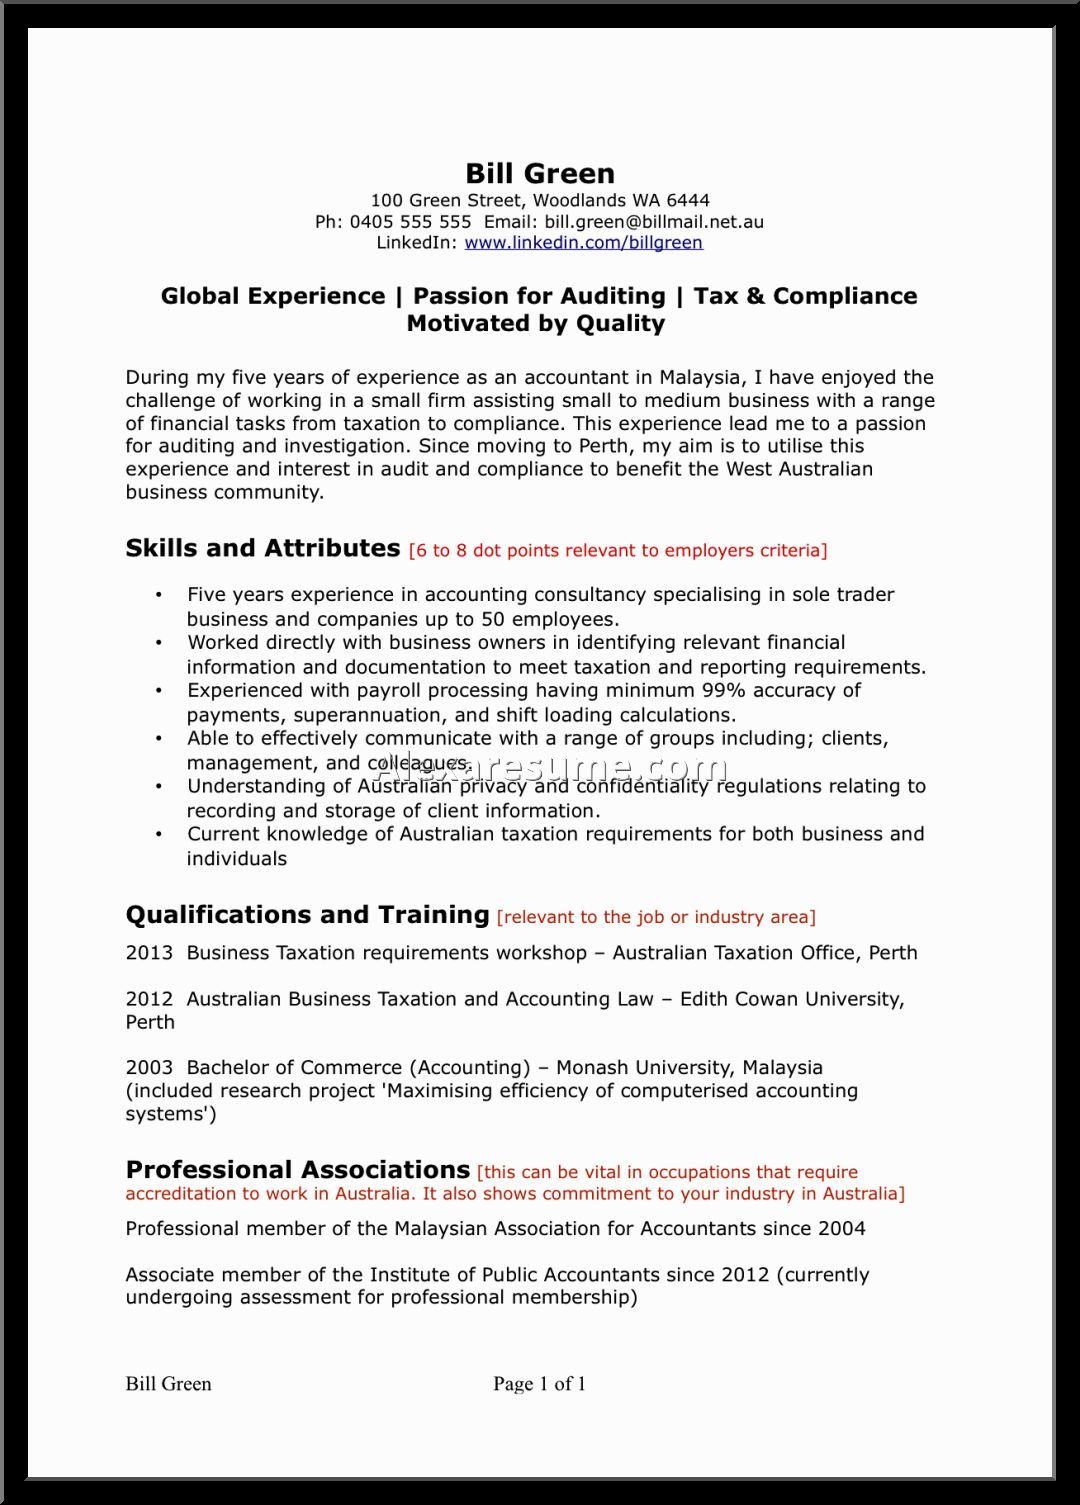 Skills Based Resume Template Skills Based Resume Template Microsoft Word Bryan Bergholz Calais